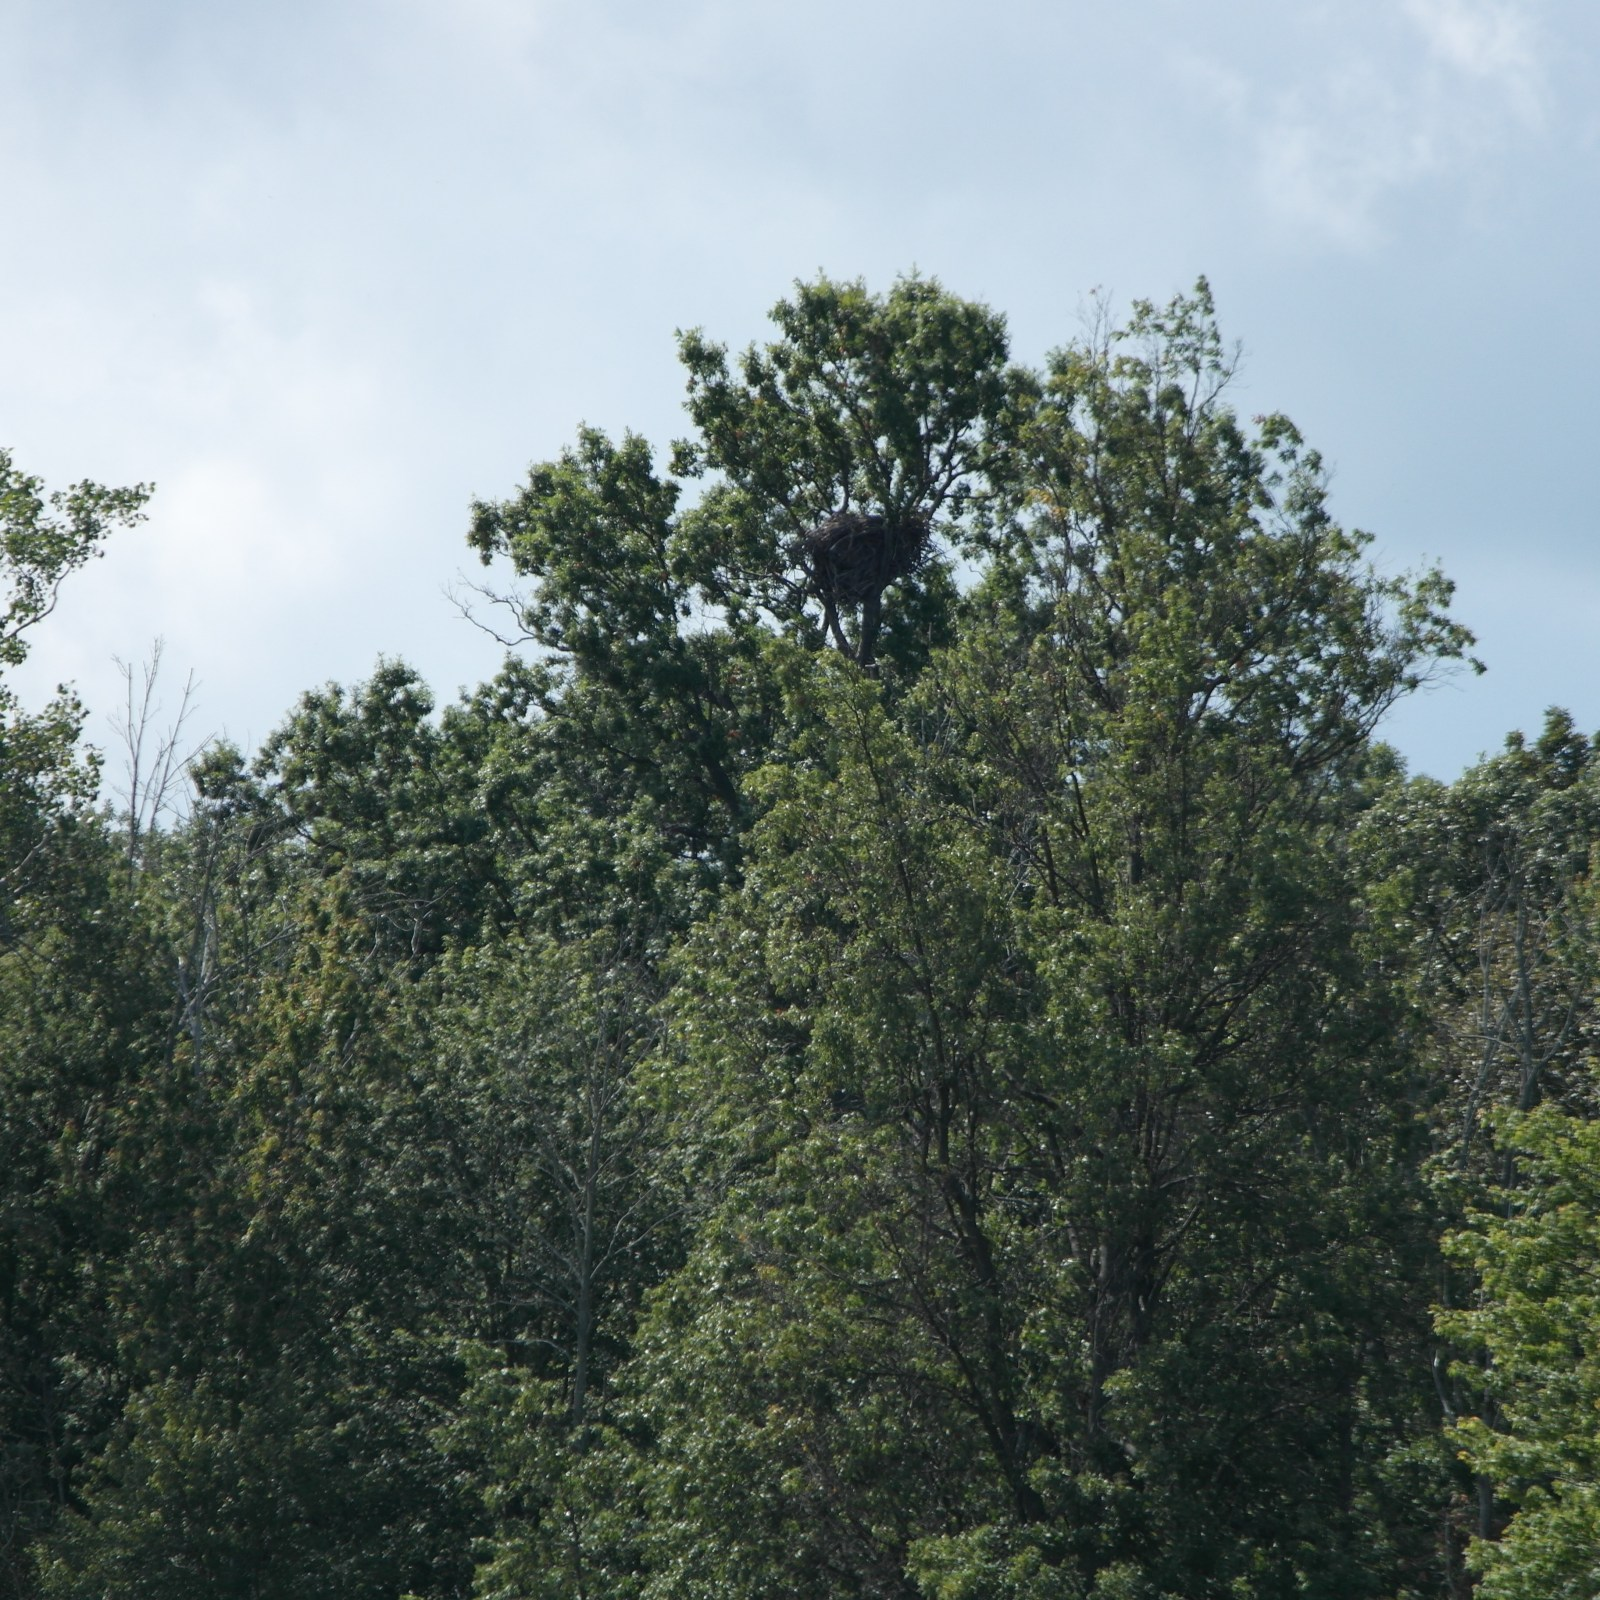 A bald eagles' nest weighing roughly 2000 pounds (Photo Credits: Chelsea Fisher)